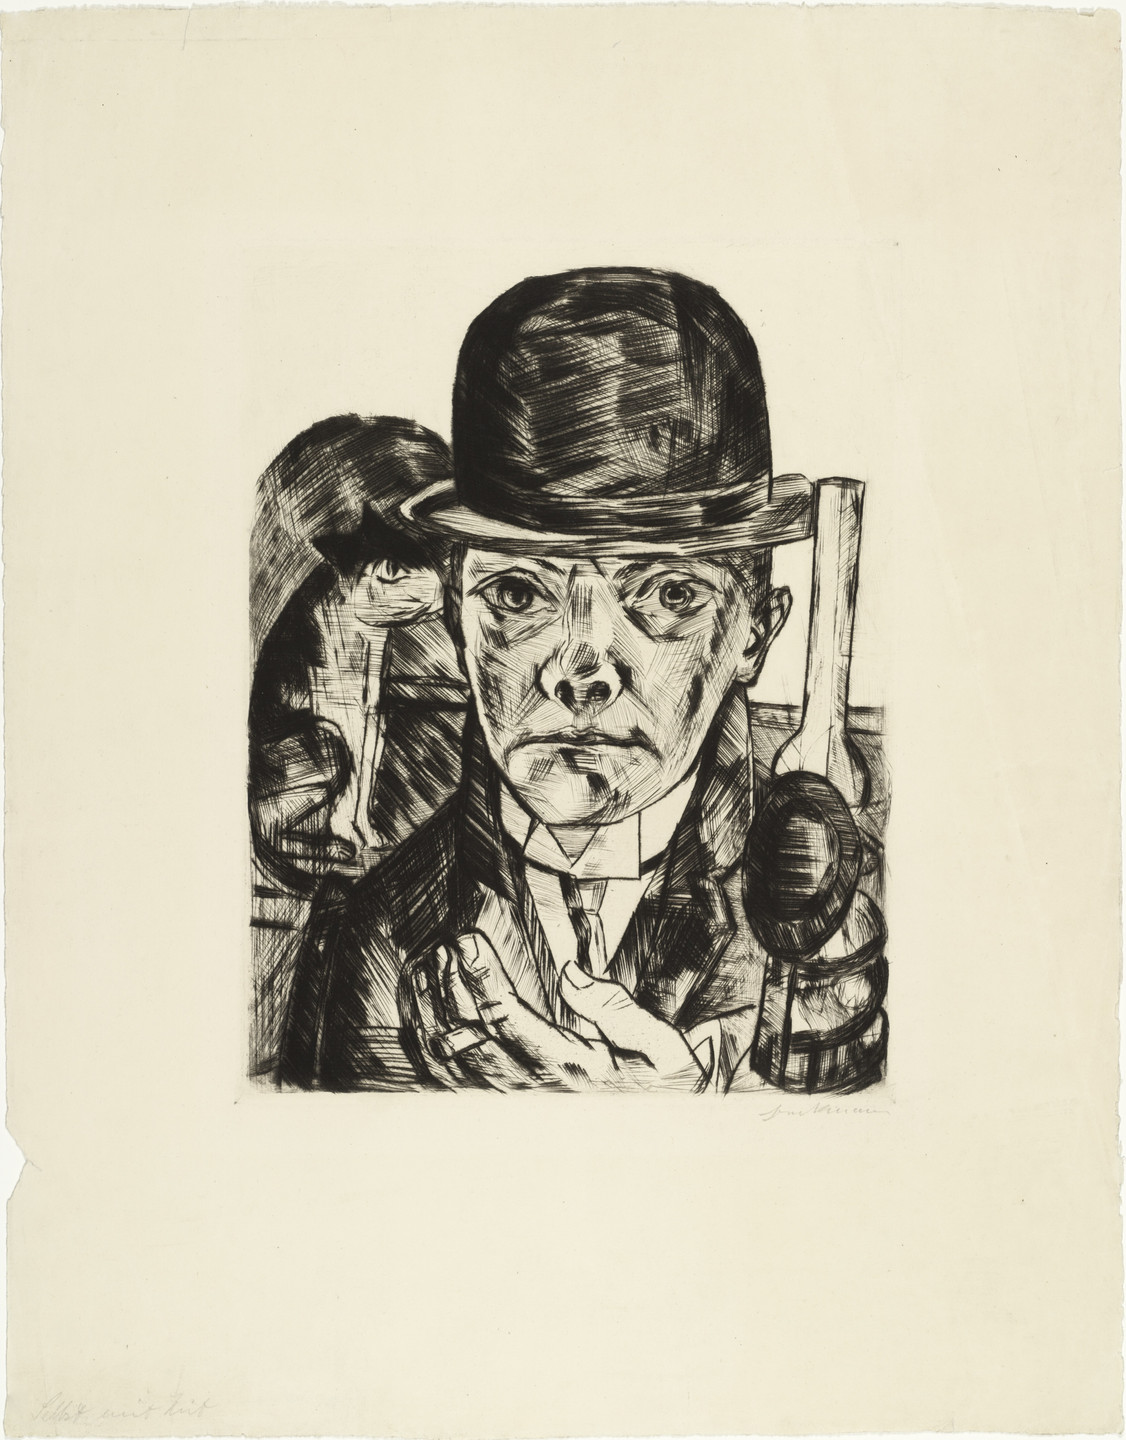 Max Beckmann. Self-Portrait in Bowler Hat (Selbstbildnis mit steifem Hut). 1921, published c. 1922